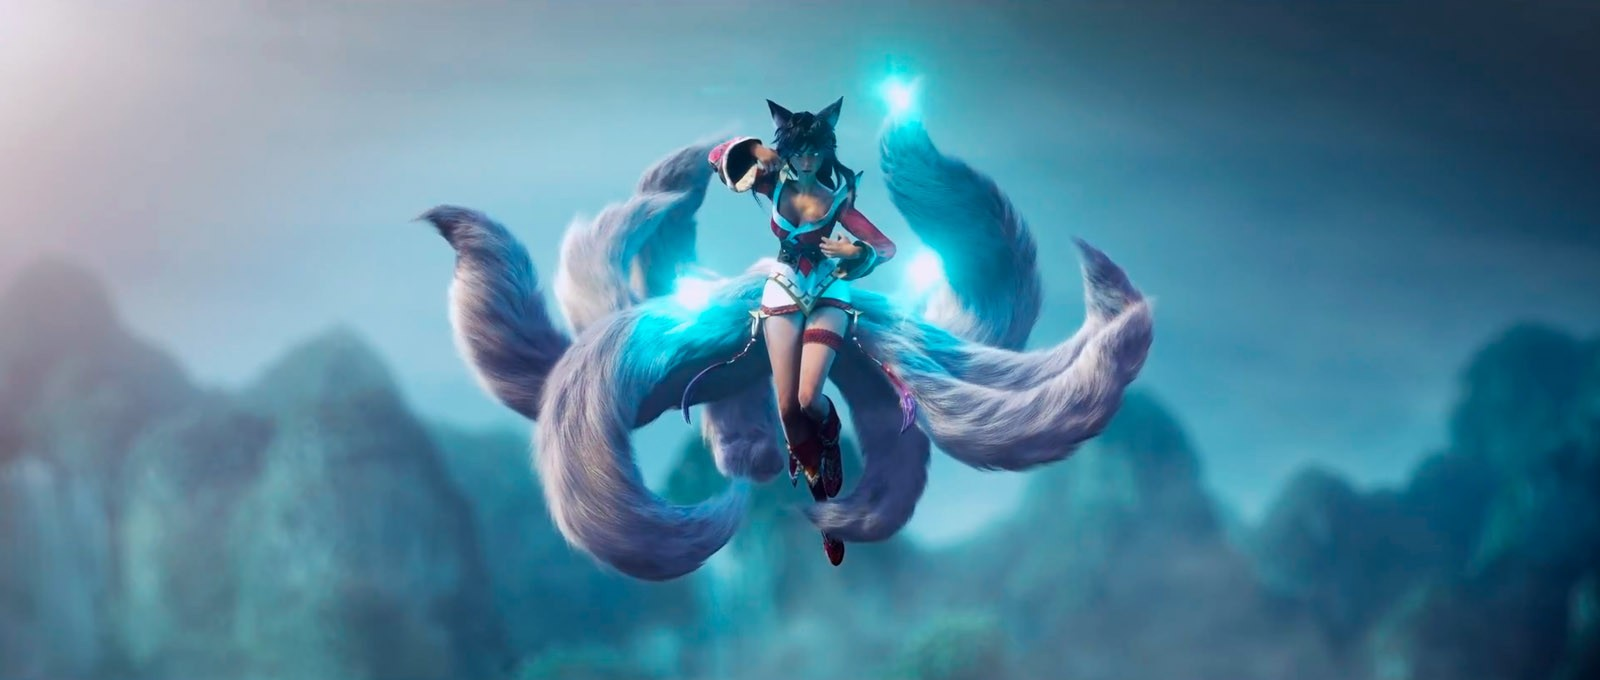 Ahri LOL wallpapers HD free Download